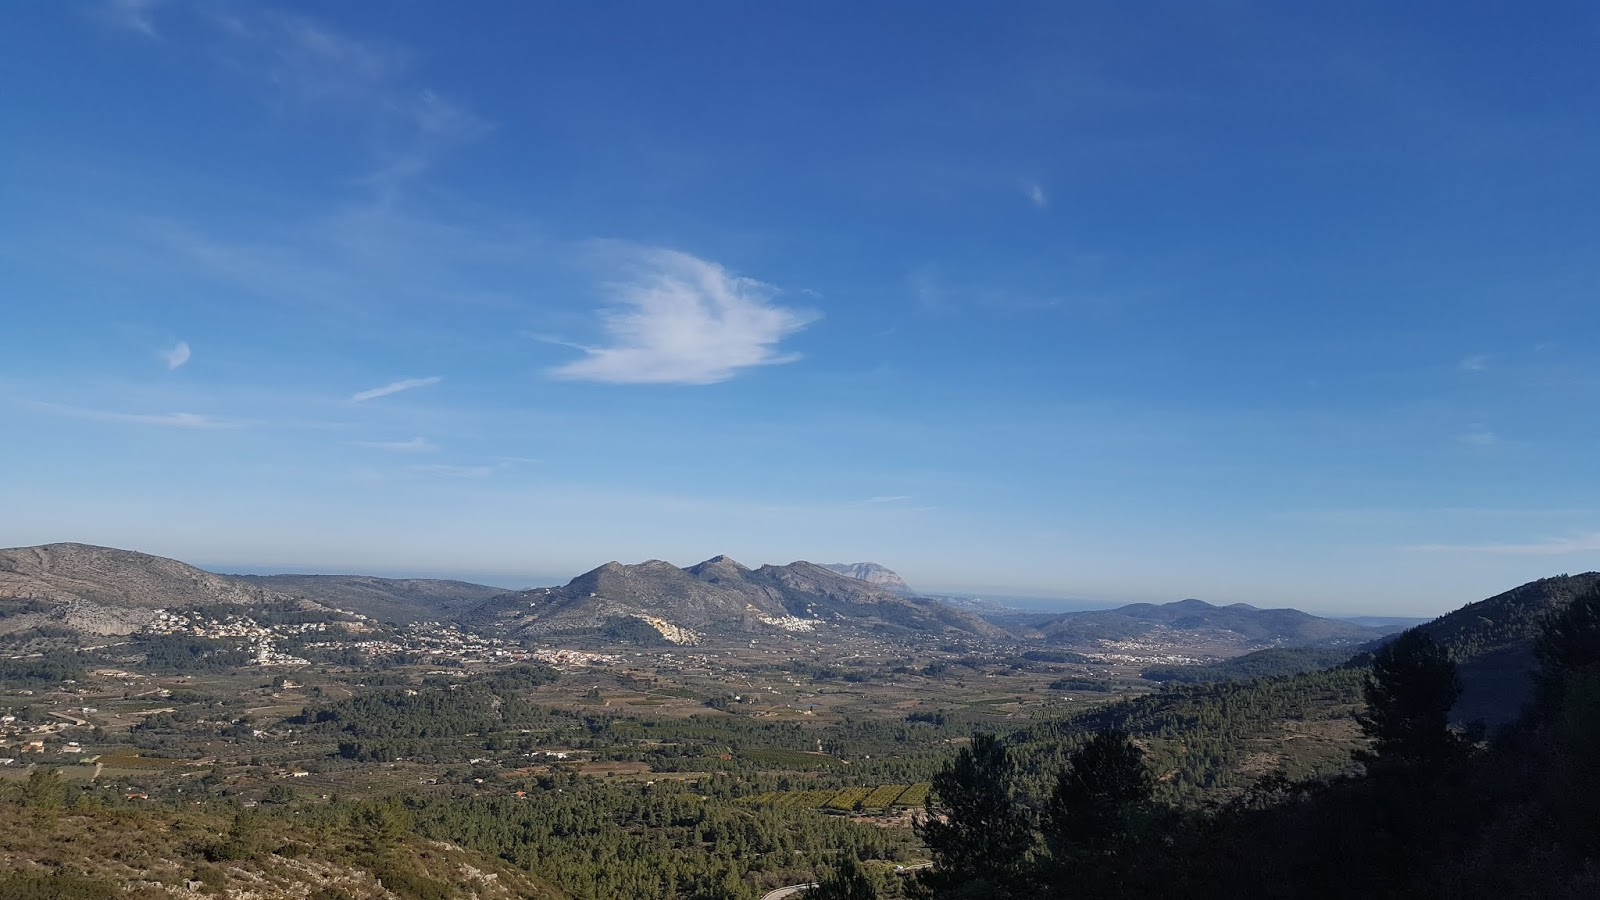 View over the village of Jalón from Coll de Rates, Alicante, Spain